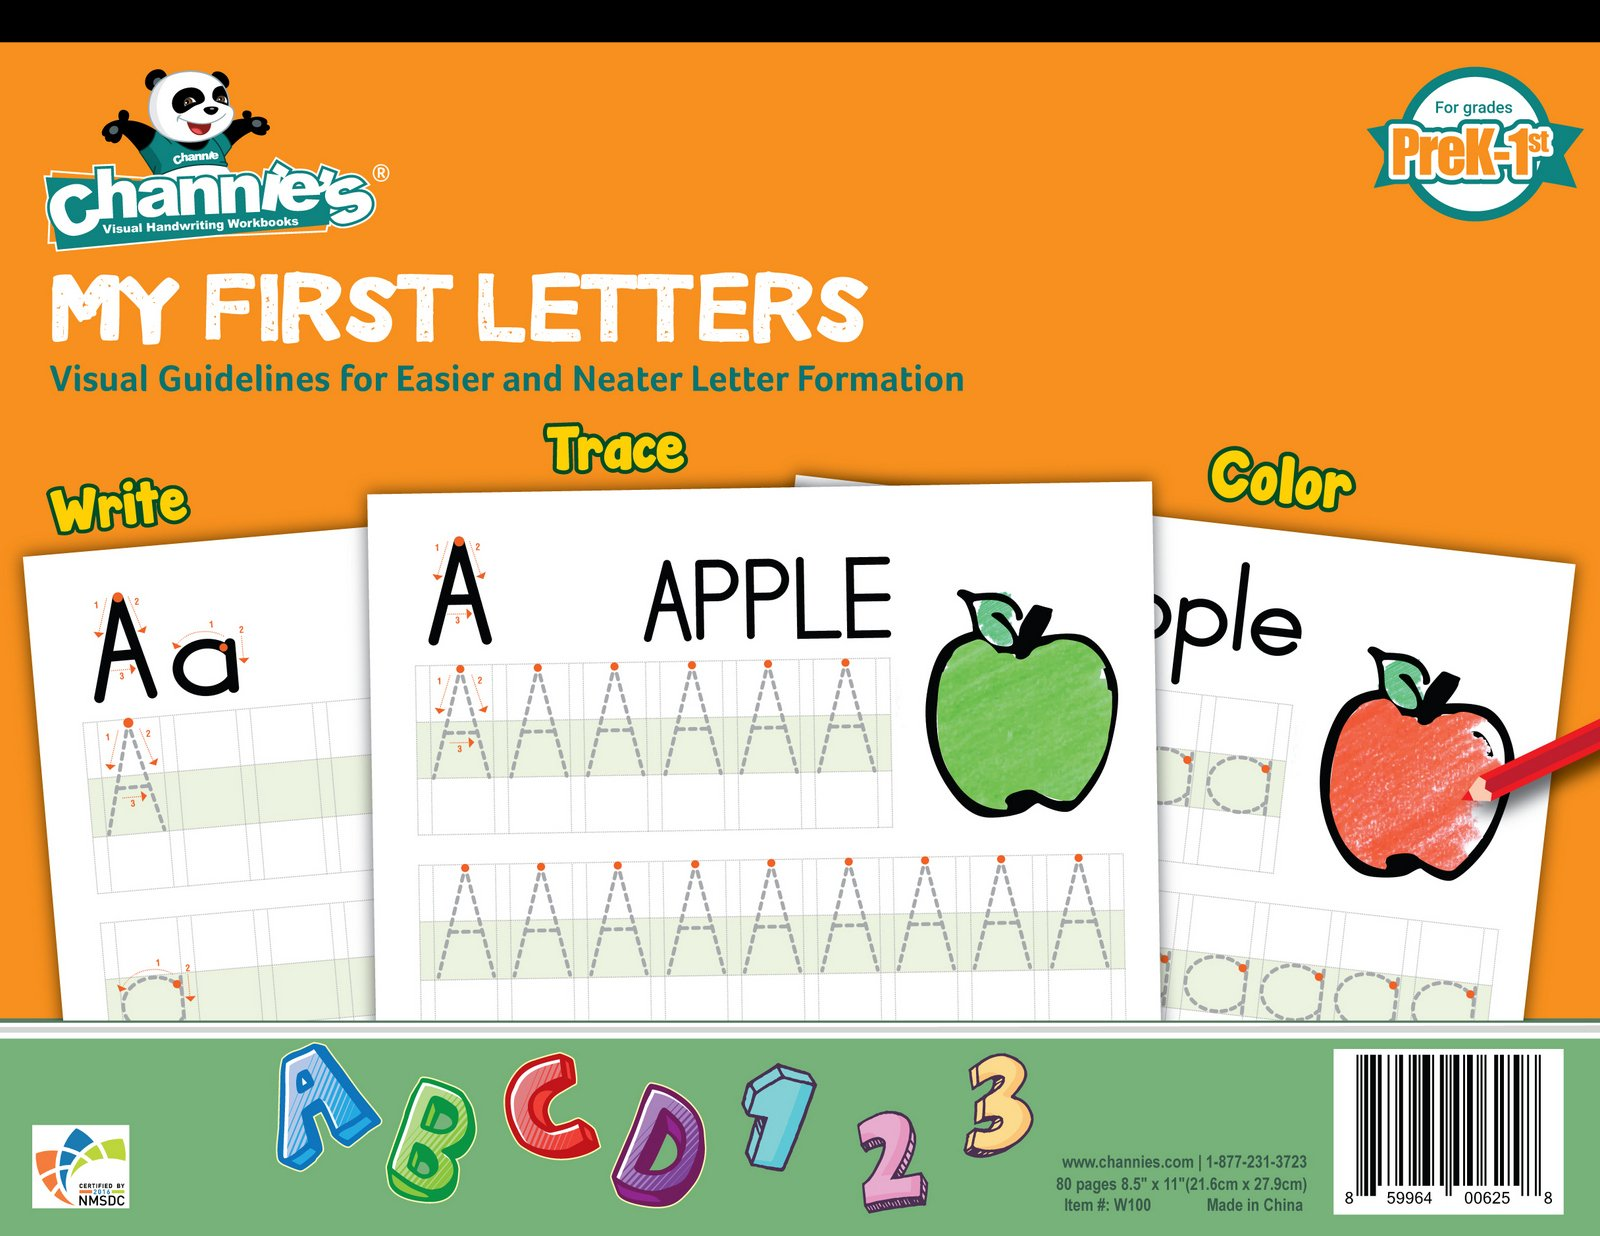 Channie's My First Letters, Easy to Trace, Write, Color, and Learn Alphabet Practice Handwriting & Printing Workbook, 80 Pages Front & Back, 40 Sheets, Grades PreK - 1st, Size 8.5'' x 11'' by Channie's